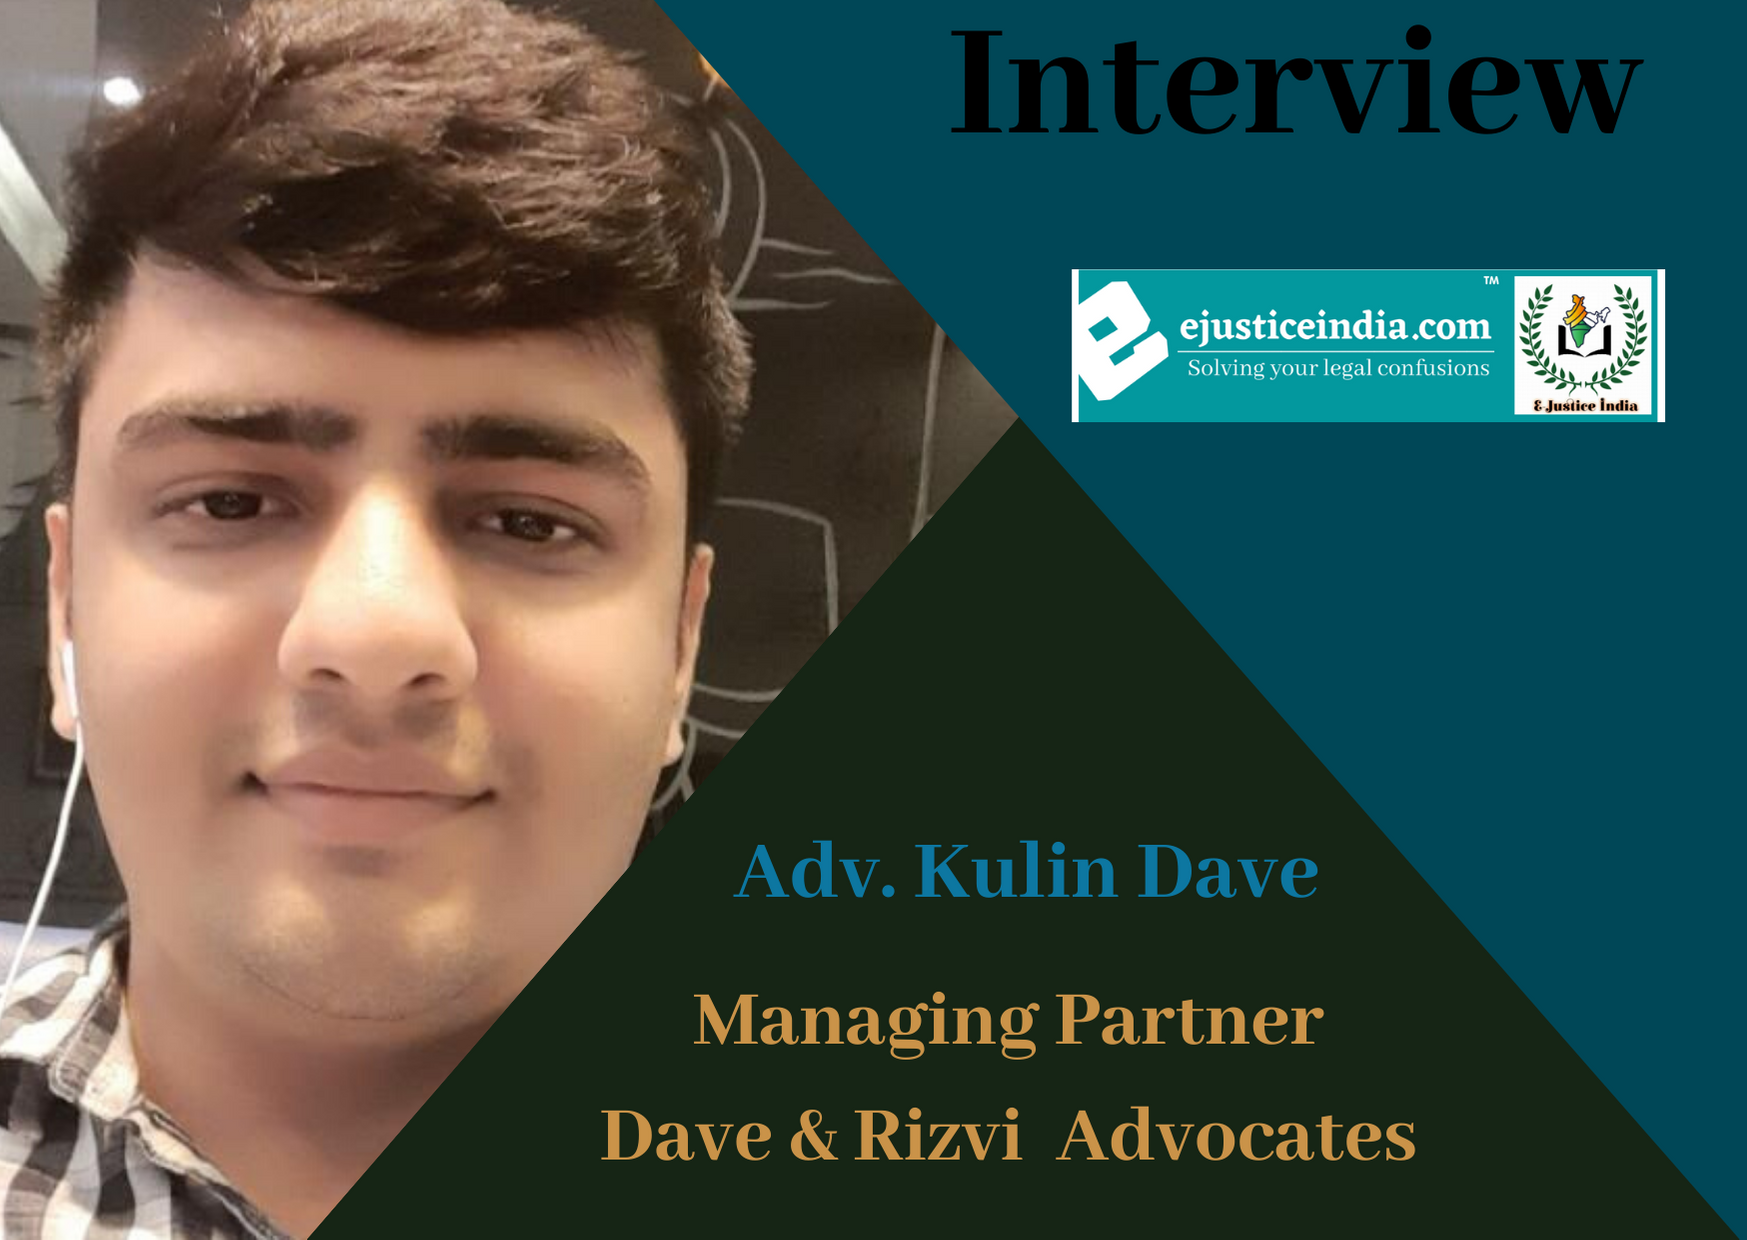 Interview with Adv. Kulin Dave, Managing Partner of Dave & Rizvi Advocates